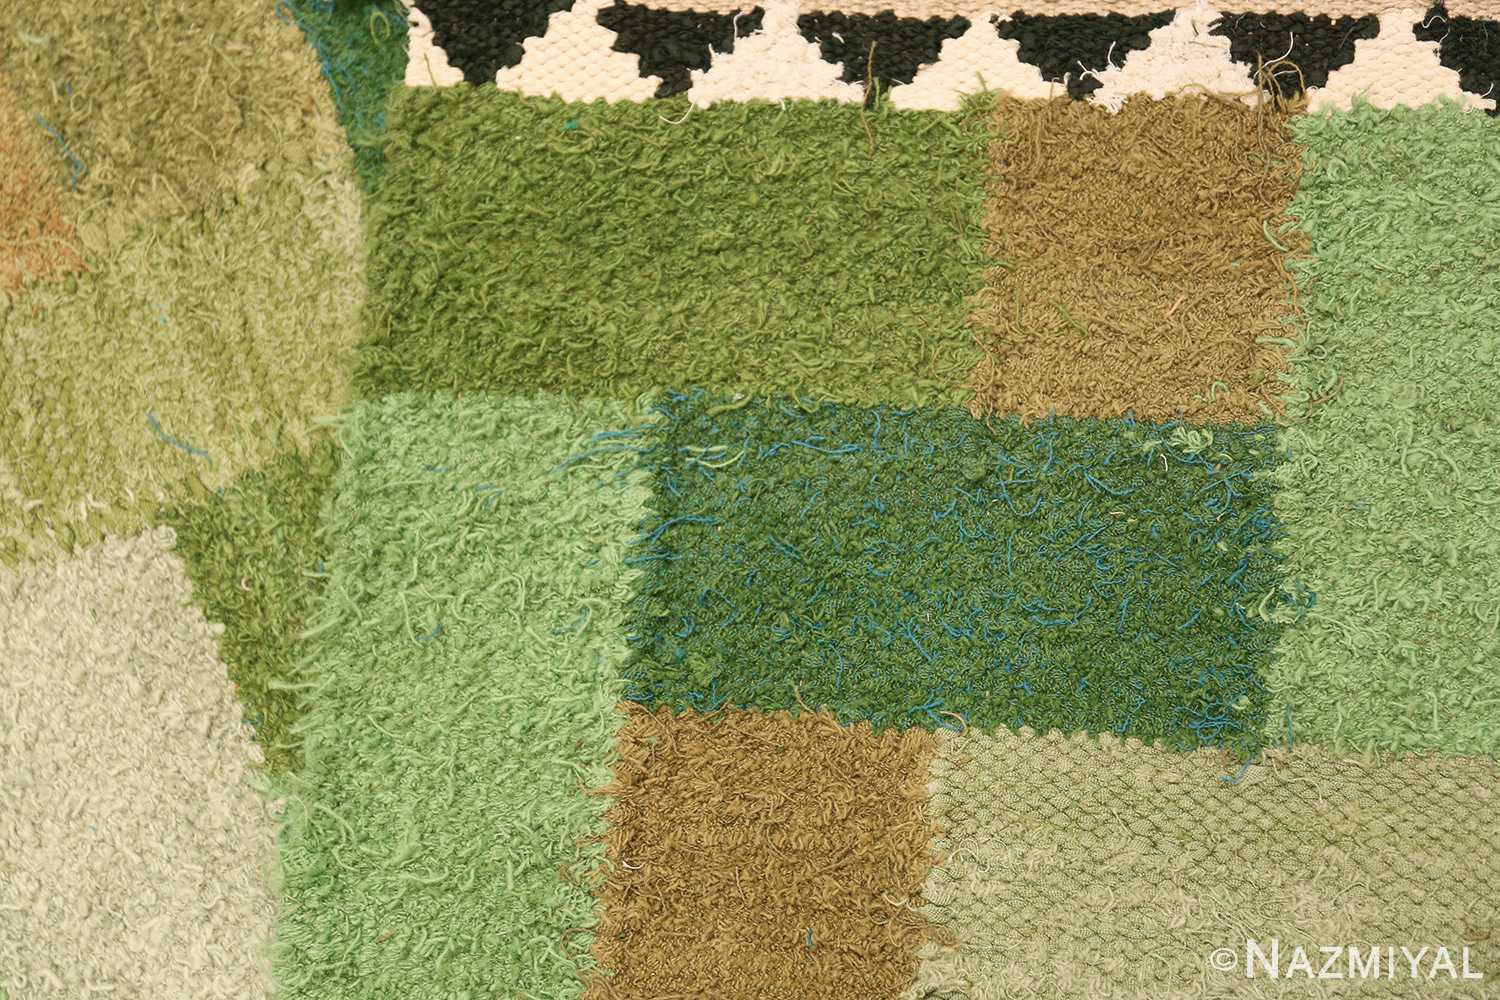 Vintage Scandinavian Swedish Rug by Ingrid Hellman Knafve 49114 Green Knots Back Nazmiyal